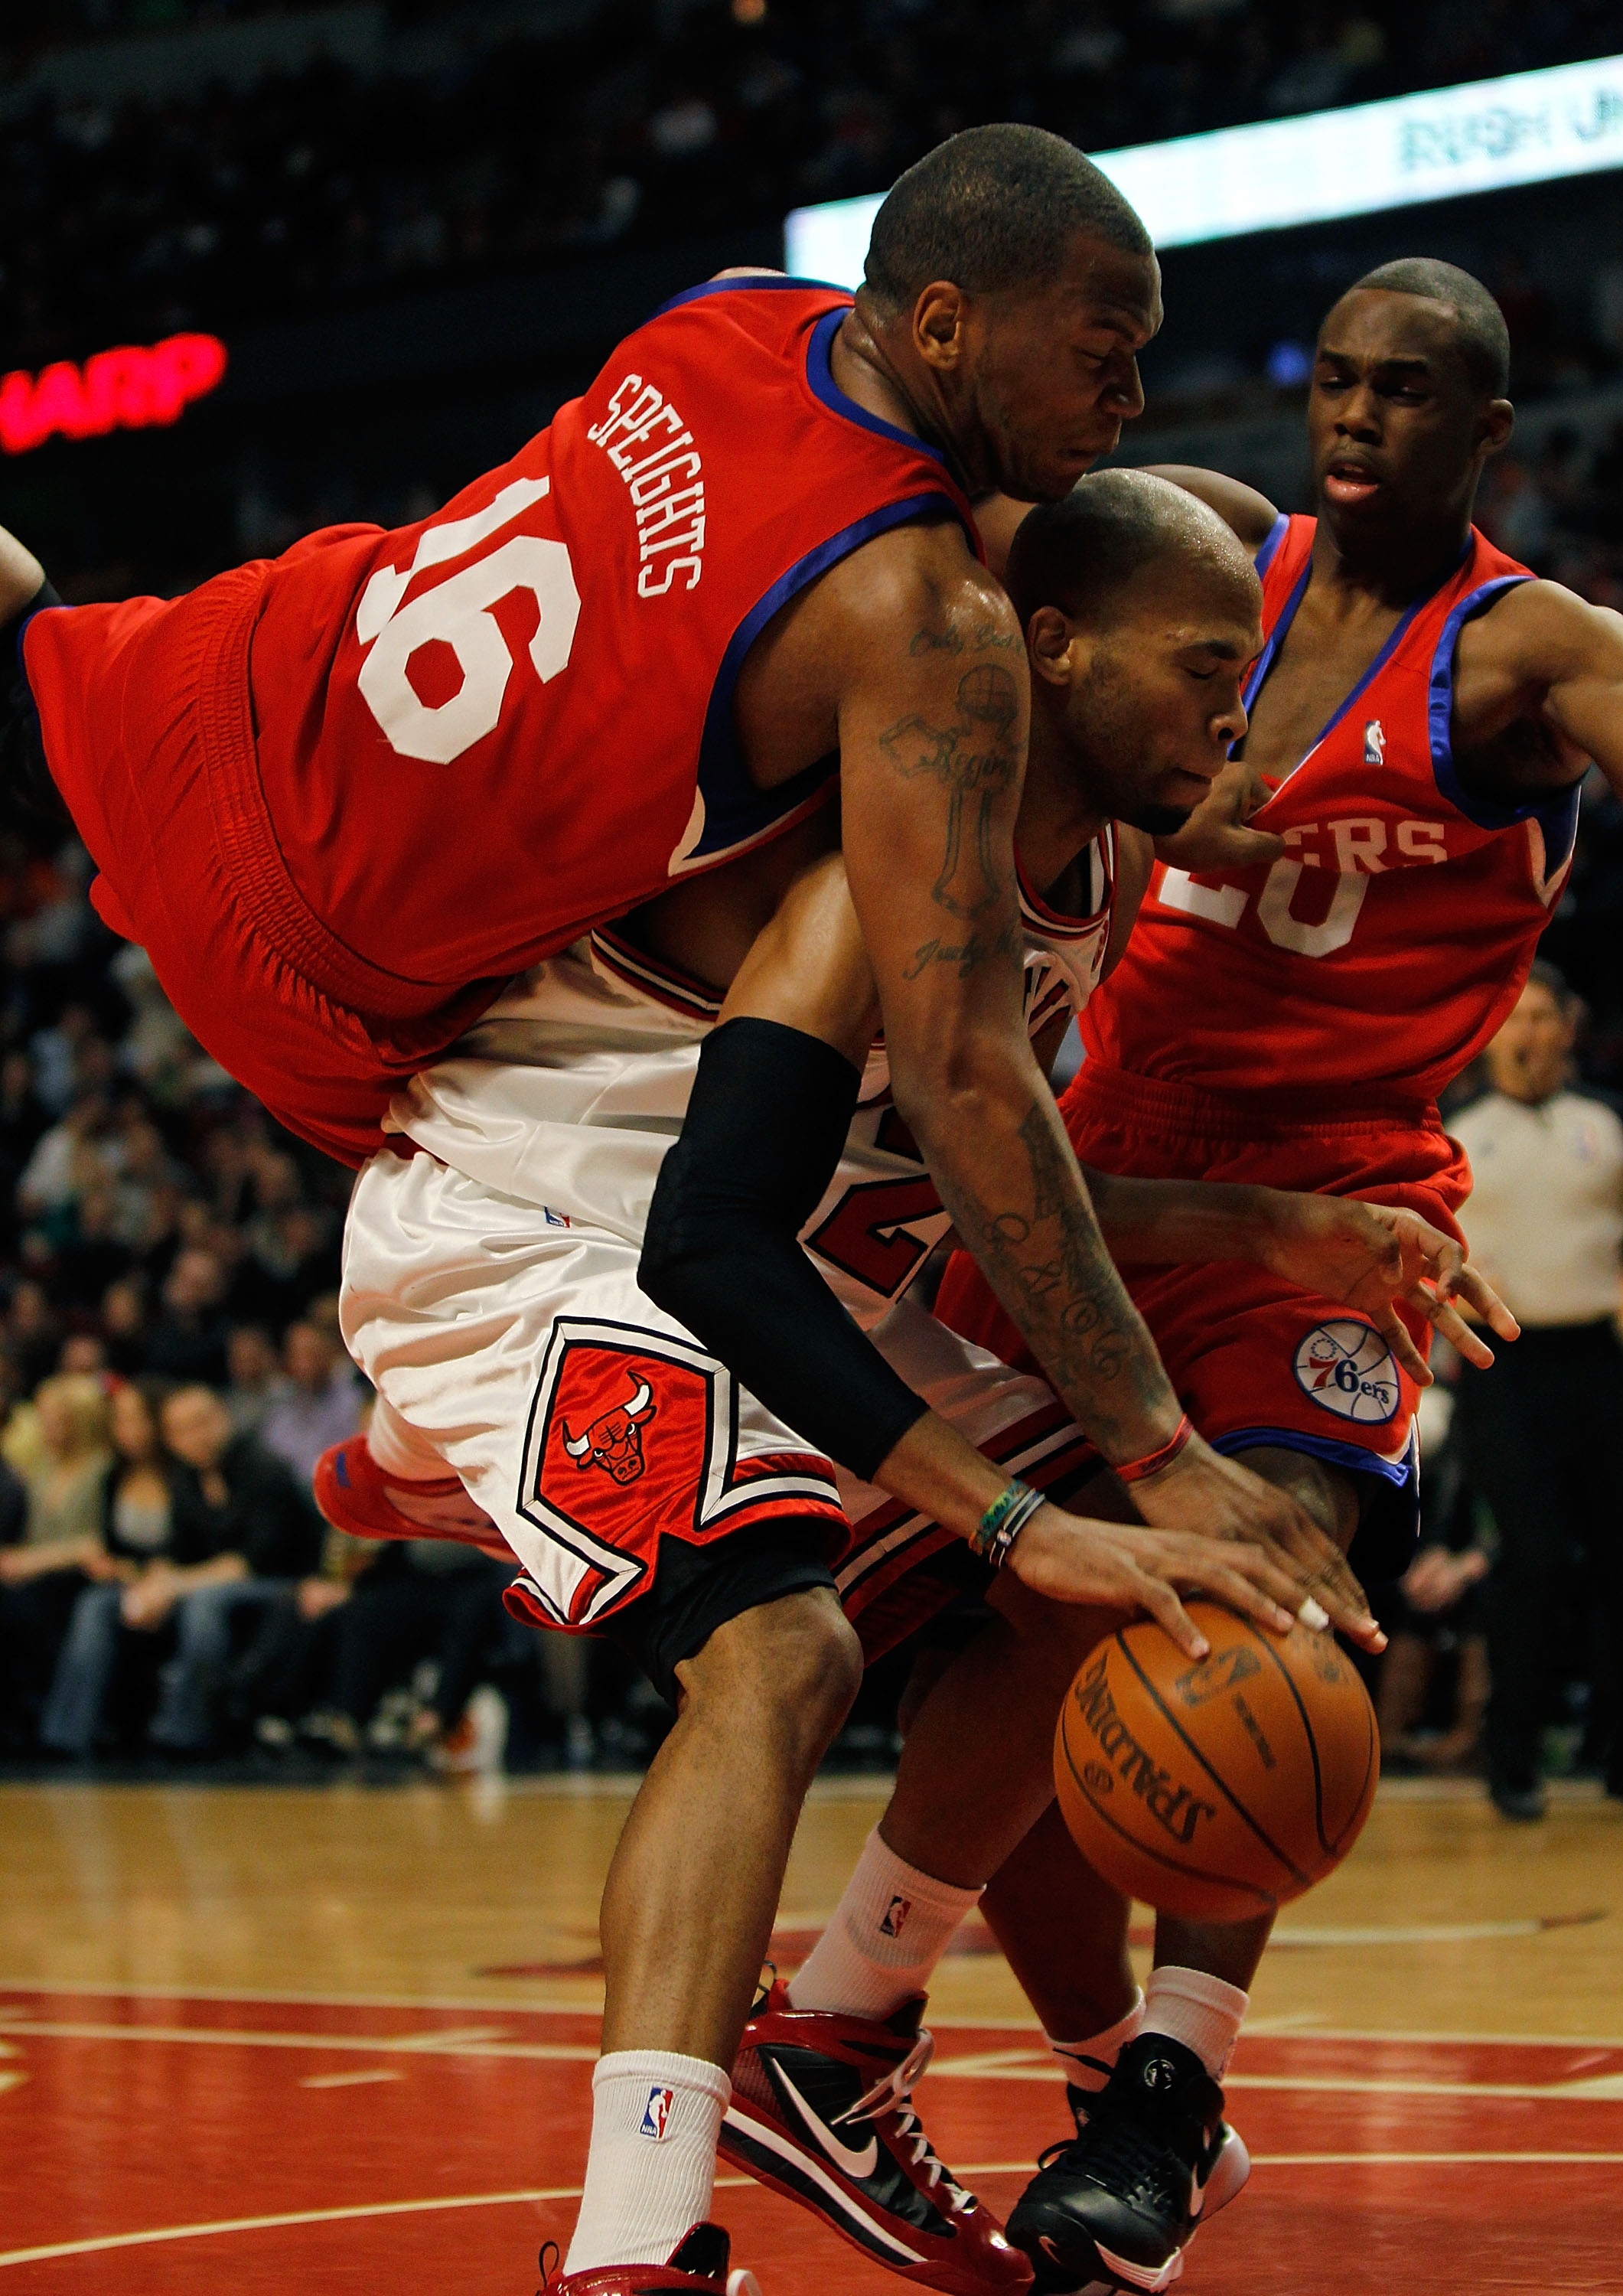 CHICAGO - FEBRUARY 20: Marreese Speights #16 of the Philadelphia 76ers falls over Taj Gibson #22 of the Chicago Bulls while holding the jersey of teammate Jodie Meeks #20 at the United Center on February 20, 2010 in Chicago, Illinois. The Bulls defeated t